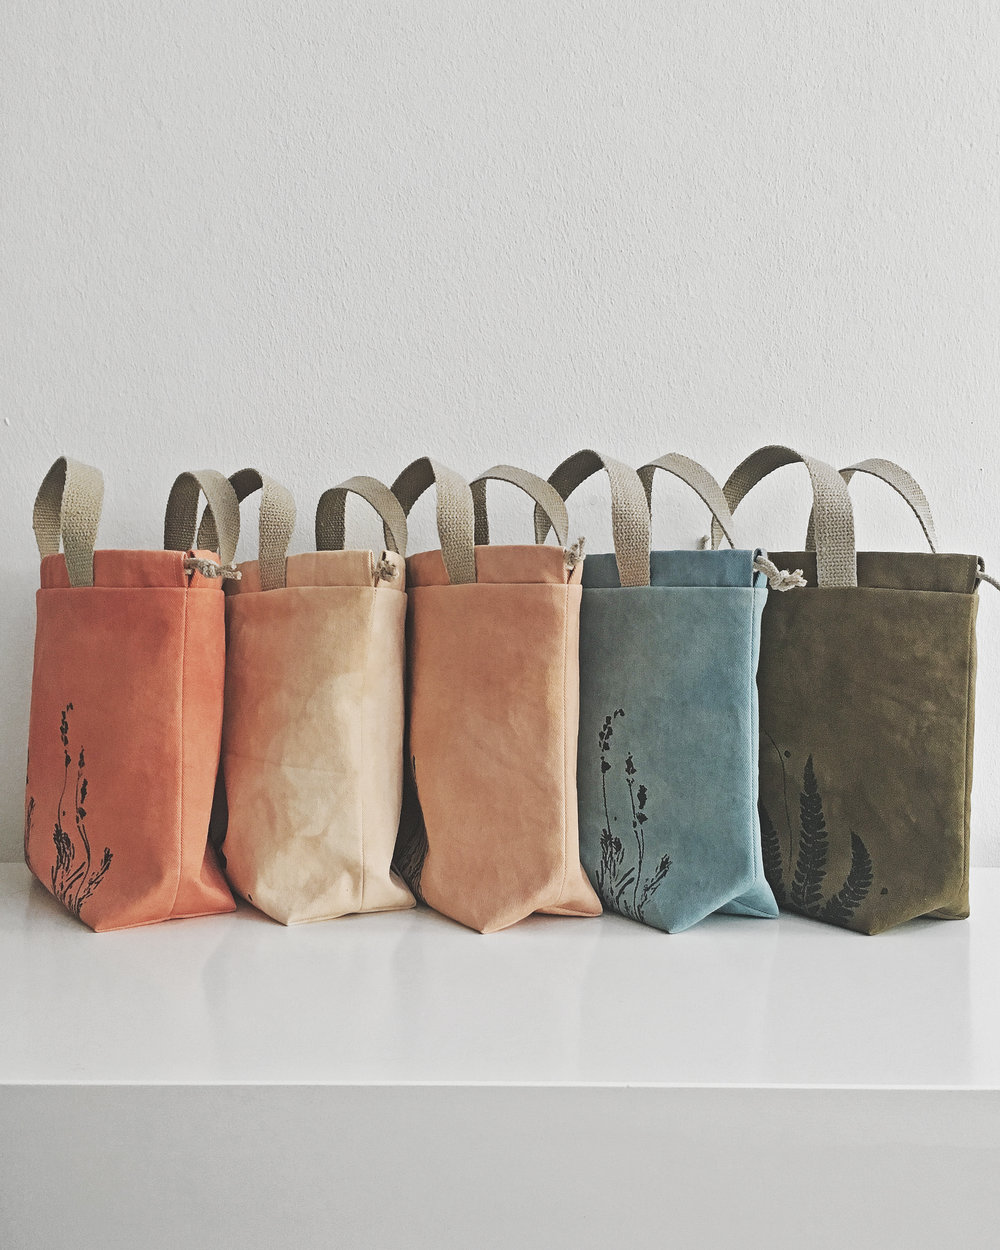 Eco bags for (not only) knitters. Dyed with madder, rhododendron, avocado, woad, marigolds.